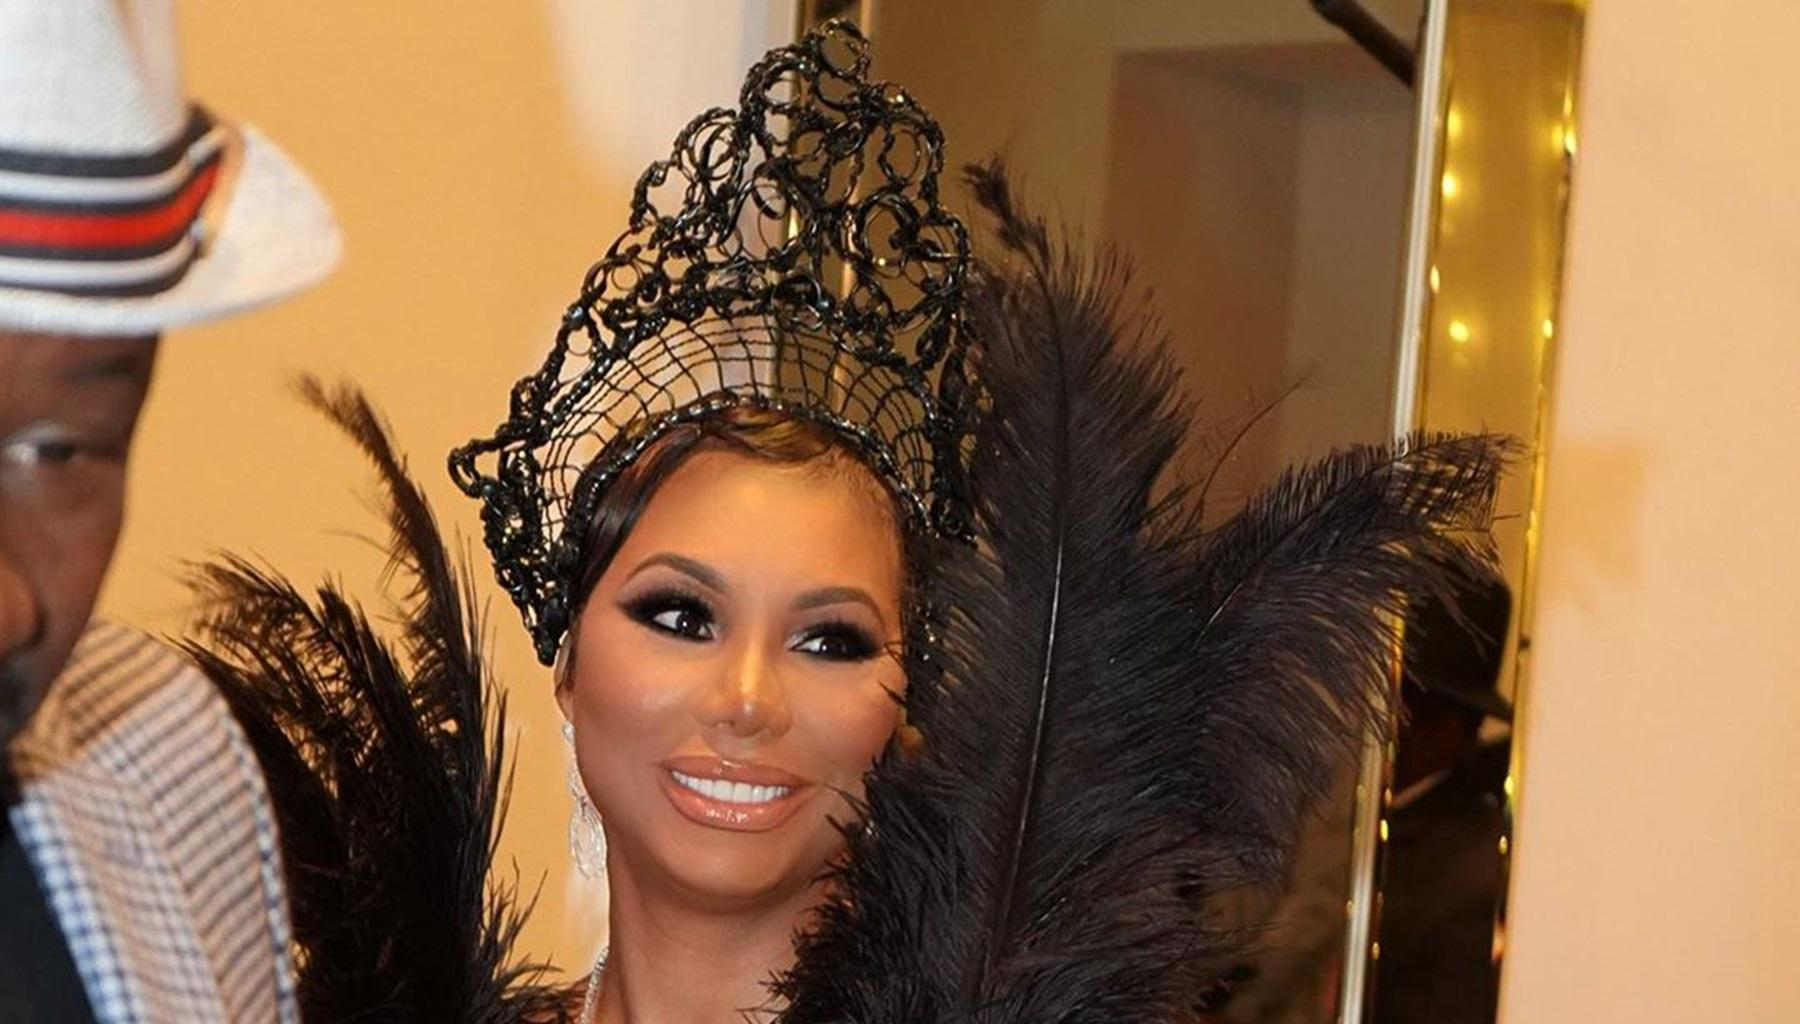 Tamar Braxton Takes The Great Gatsby Theme From Sister Toni Braxton For David Adefeso's Extravagant Birthday Party -- Photos From The Event Look Like A Wedding